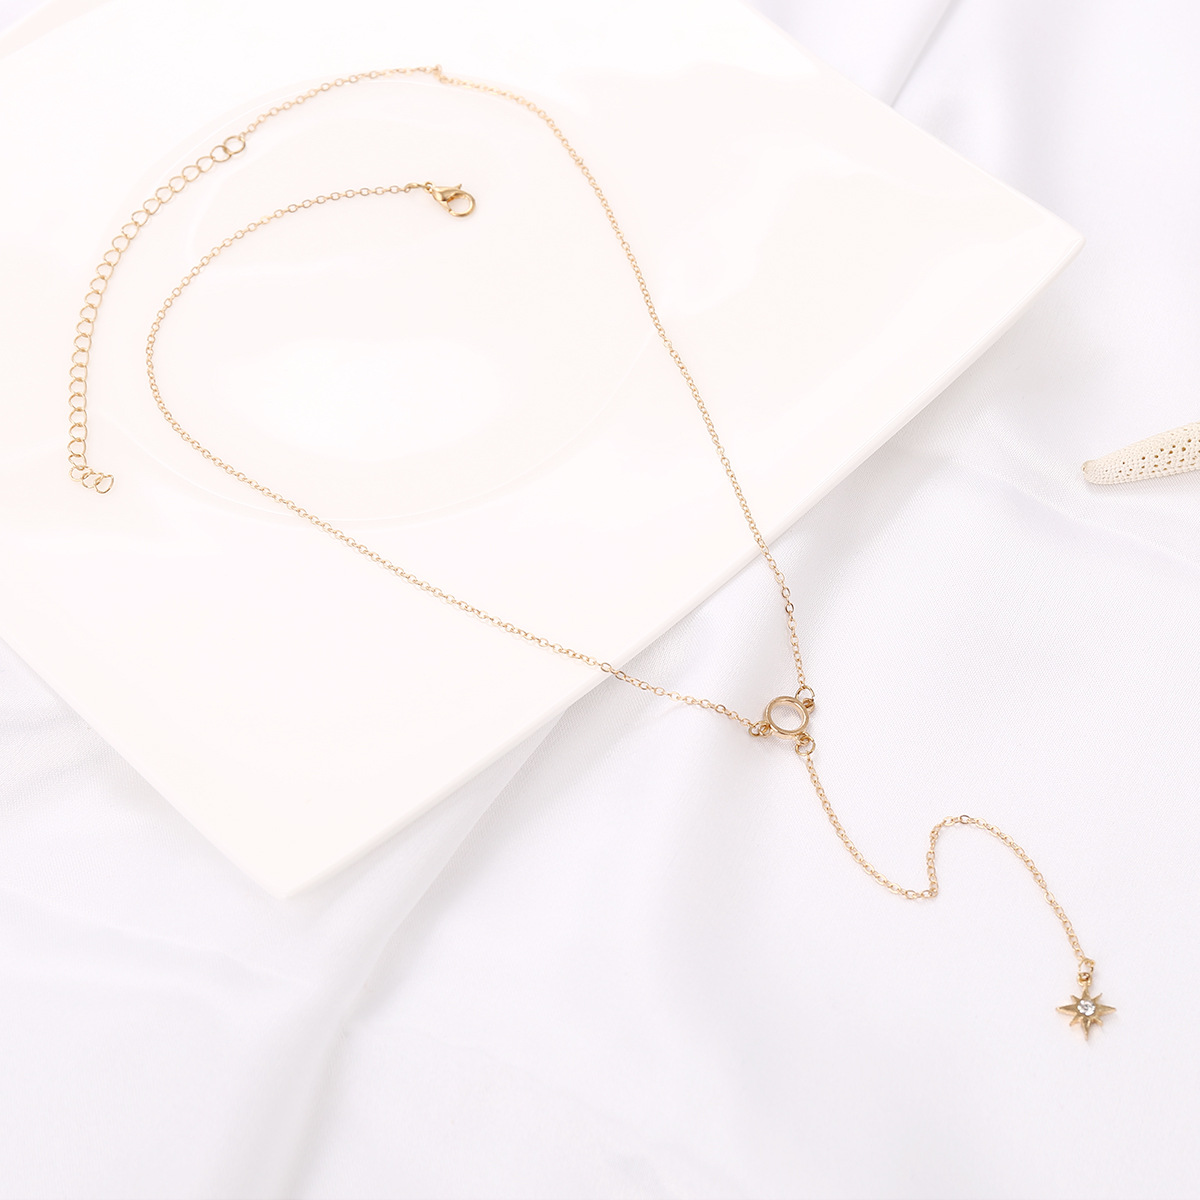 Fashion Alloy plating necklace Geometric (Gold -1656)NHXR1649-Gold -1656